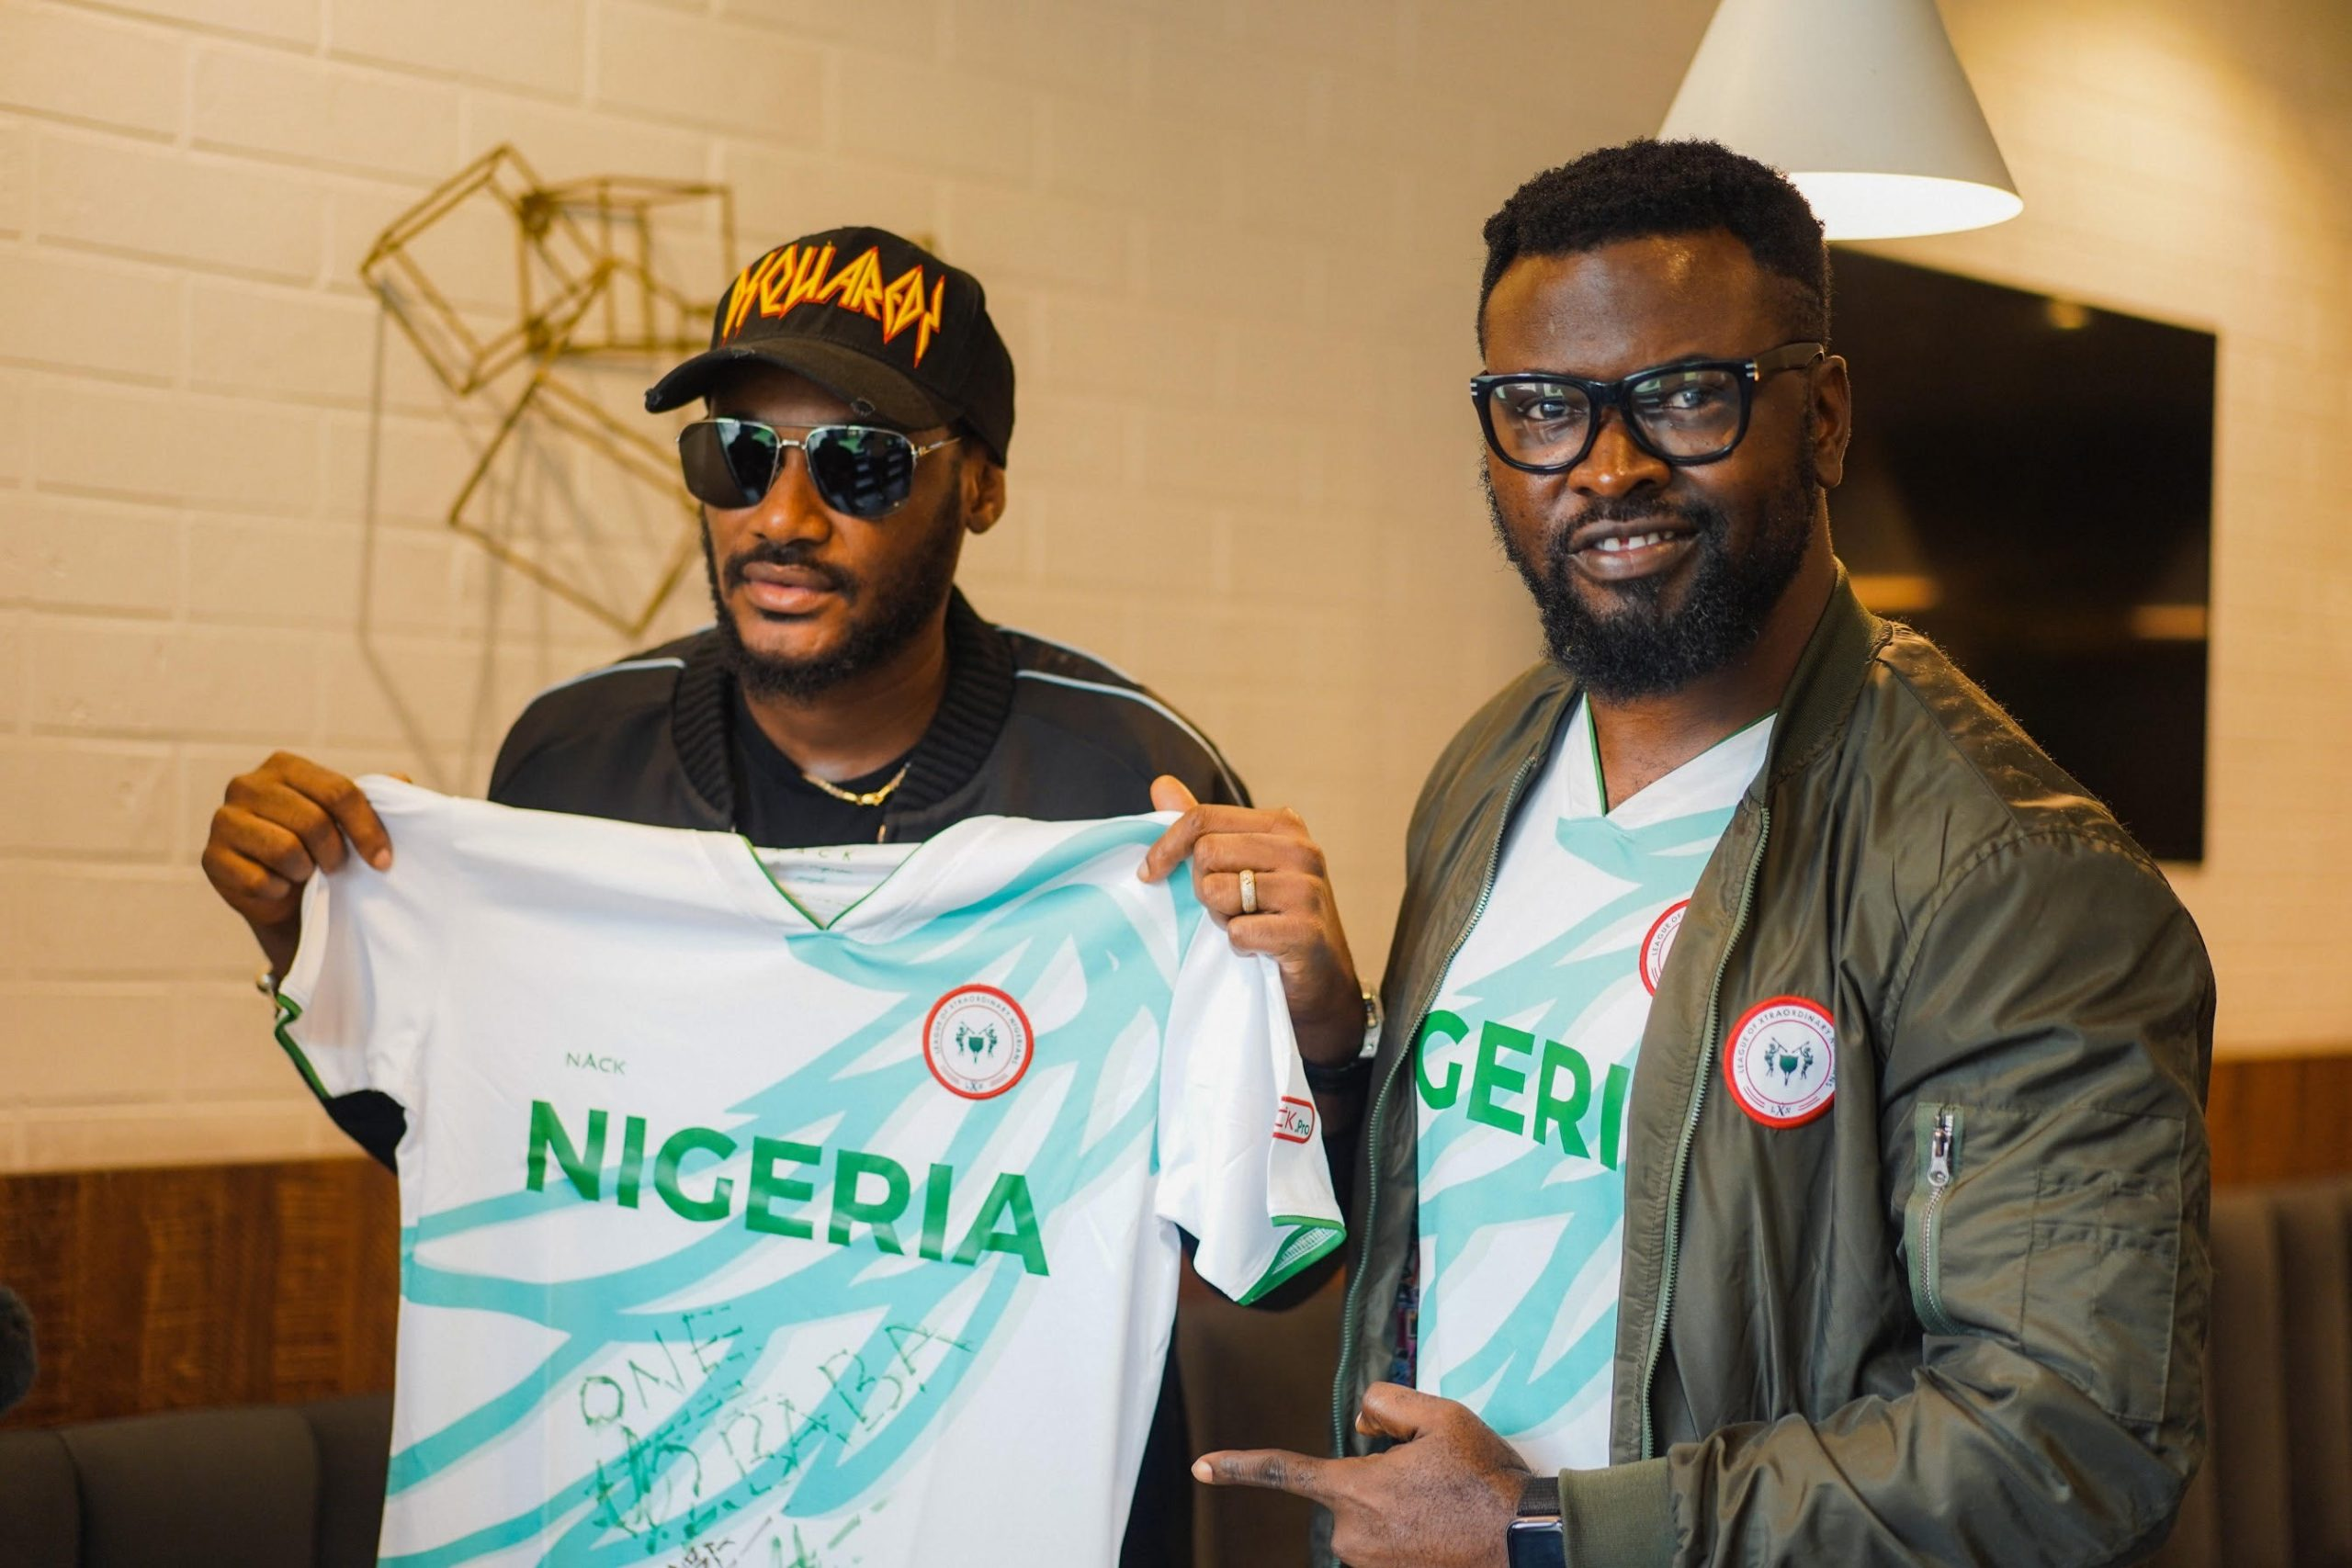 2Face joins NACK